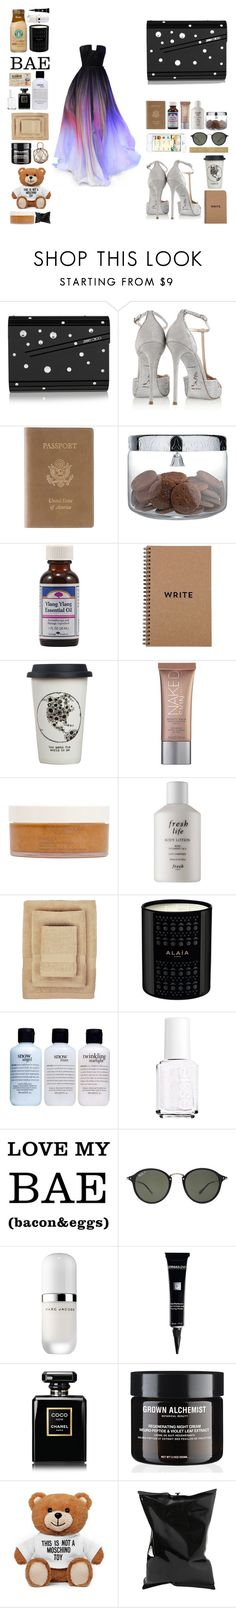 """""""Sem título #12005"""" by nathsouzaz ❤ liked on Polyvore featuring Elie Saab, Jimmy Choo, René Caovilla, Royce Leather, Alessi, Ylang Ylang, Natural Life, Urban Decay, African Botanics and Fresh"""